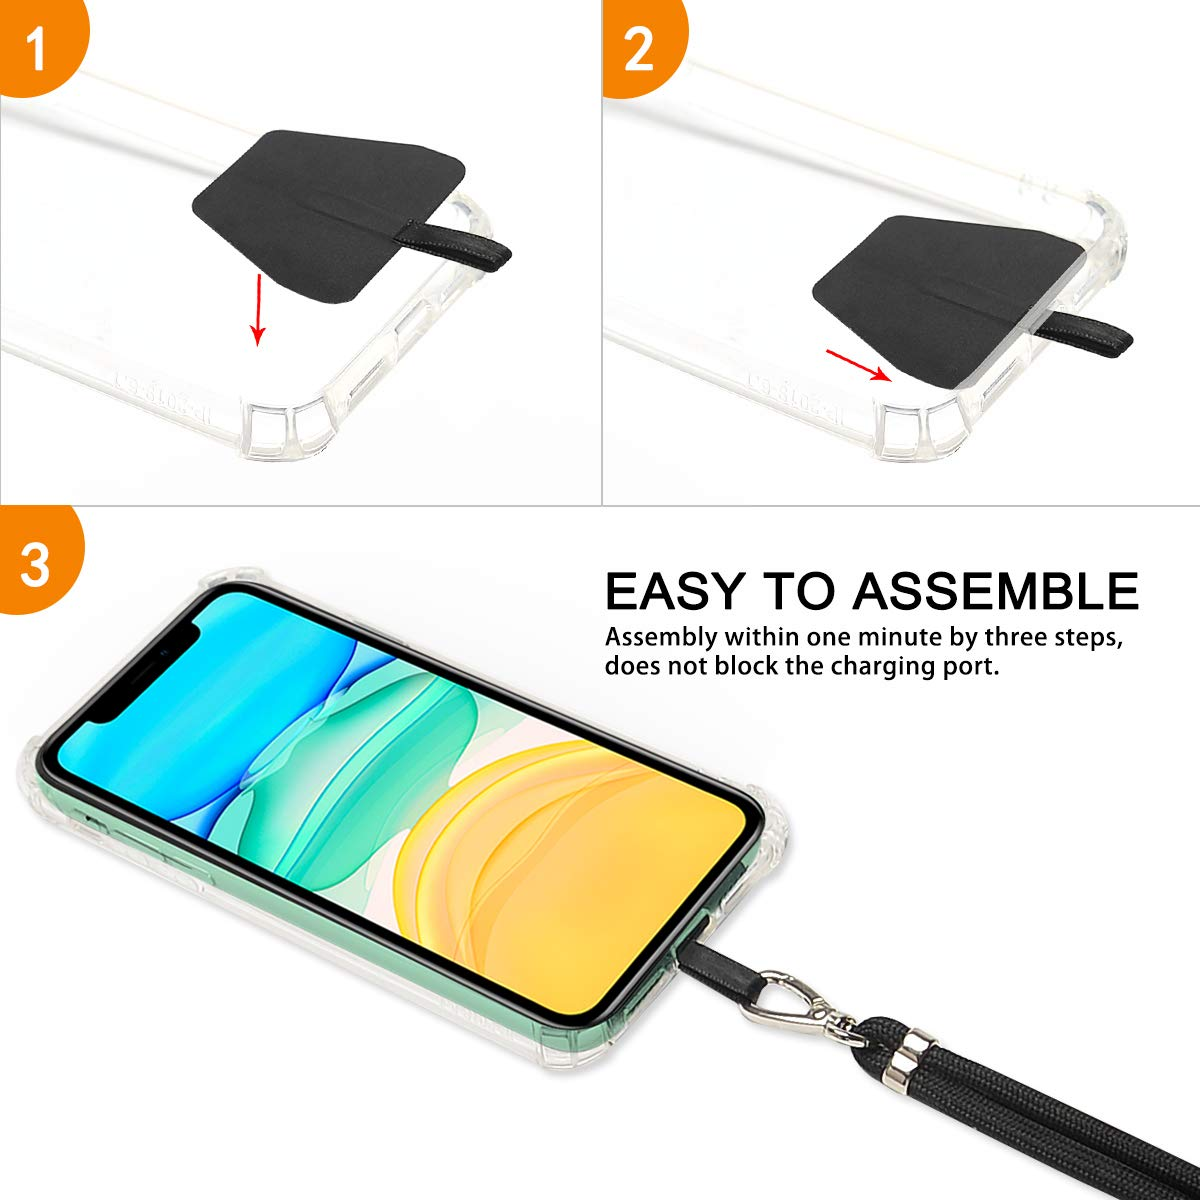 Universal Phone Lanyard for Smartphone iPhone 8,7 6S iPhone 6S Plus,Samsung Galaxy Google Pixel Gray Mobile Tether with Detachable Nylon Neckstrap Takyu Cell Phone Lanyard